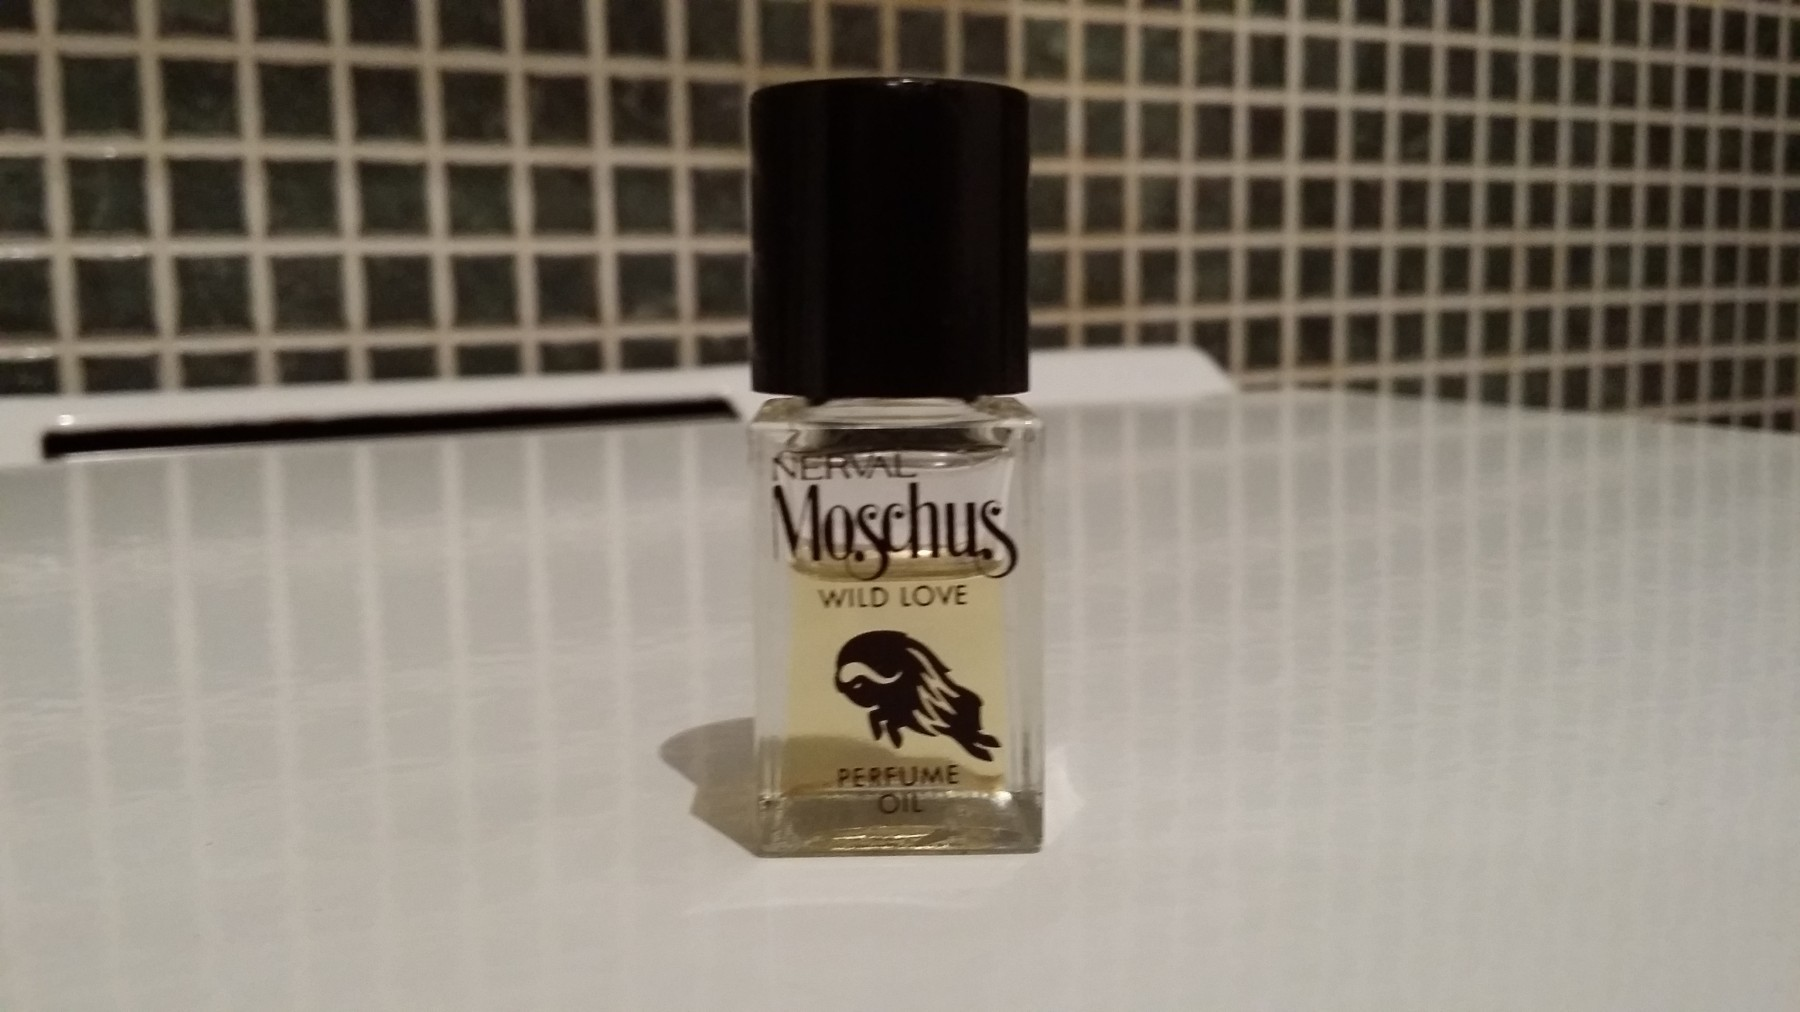 moschus oil wild love